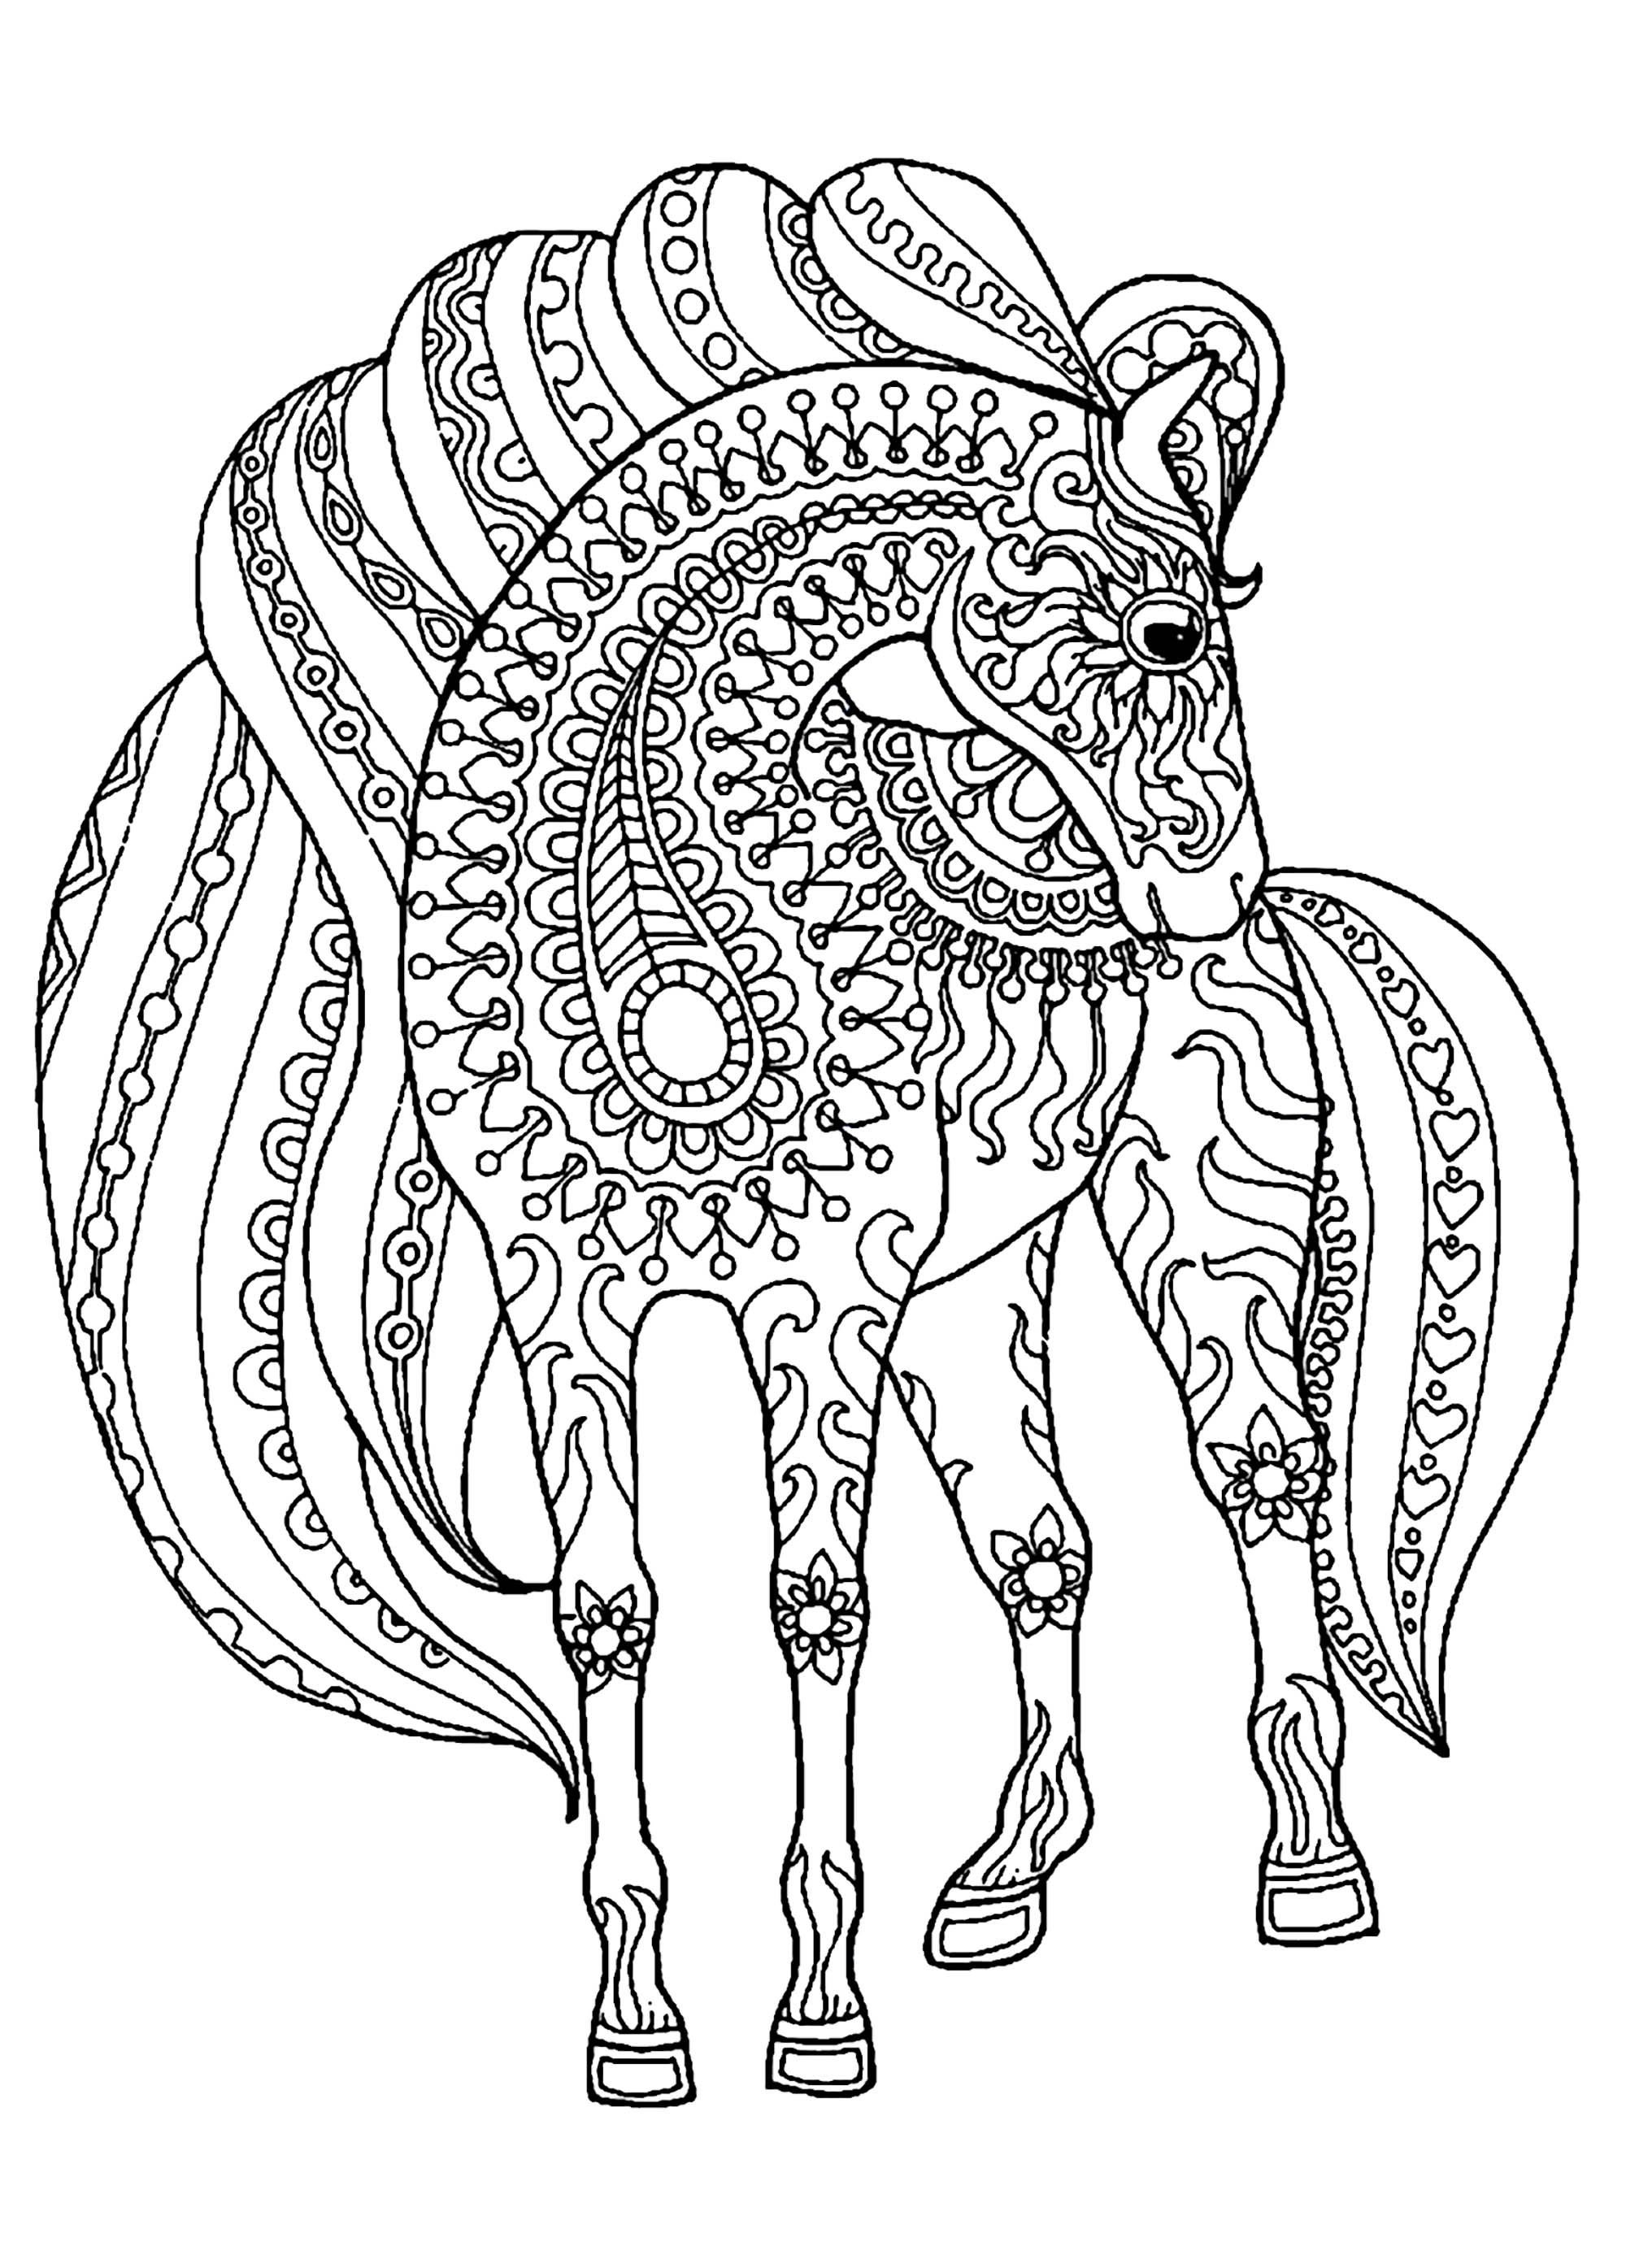 chevale coloring pages - photo#32